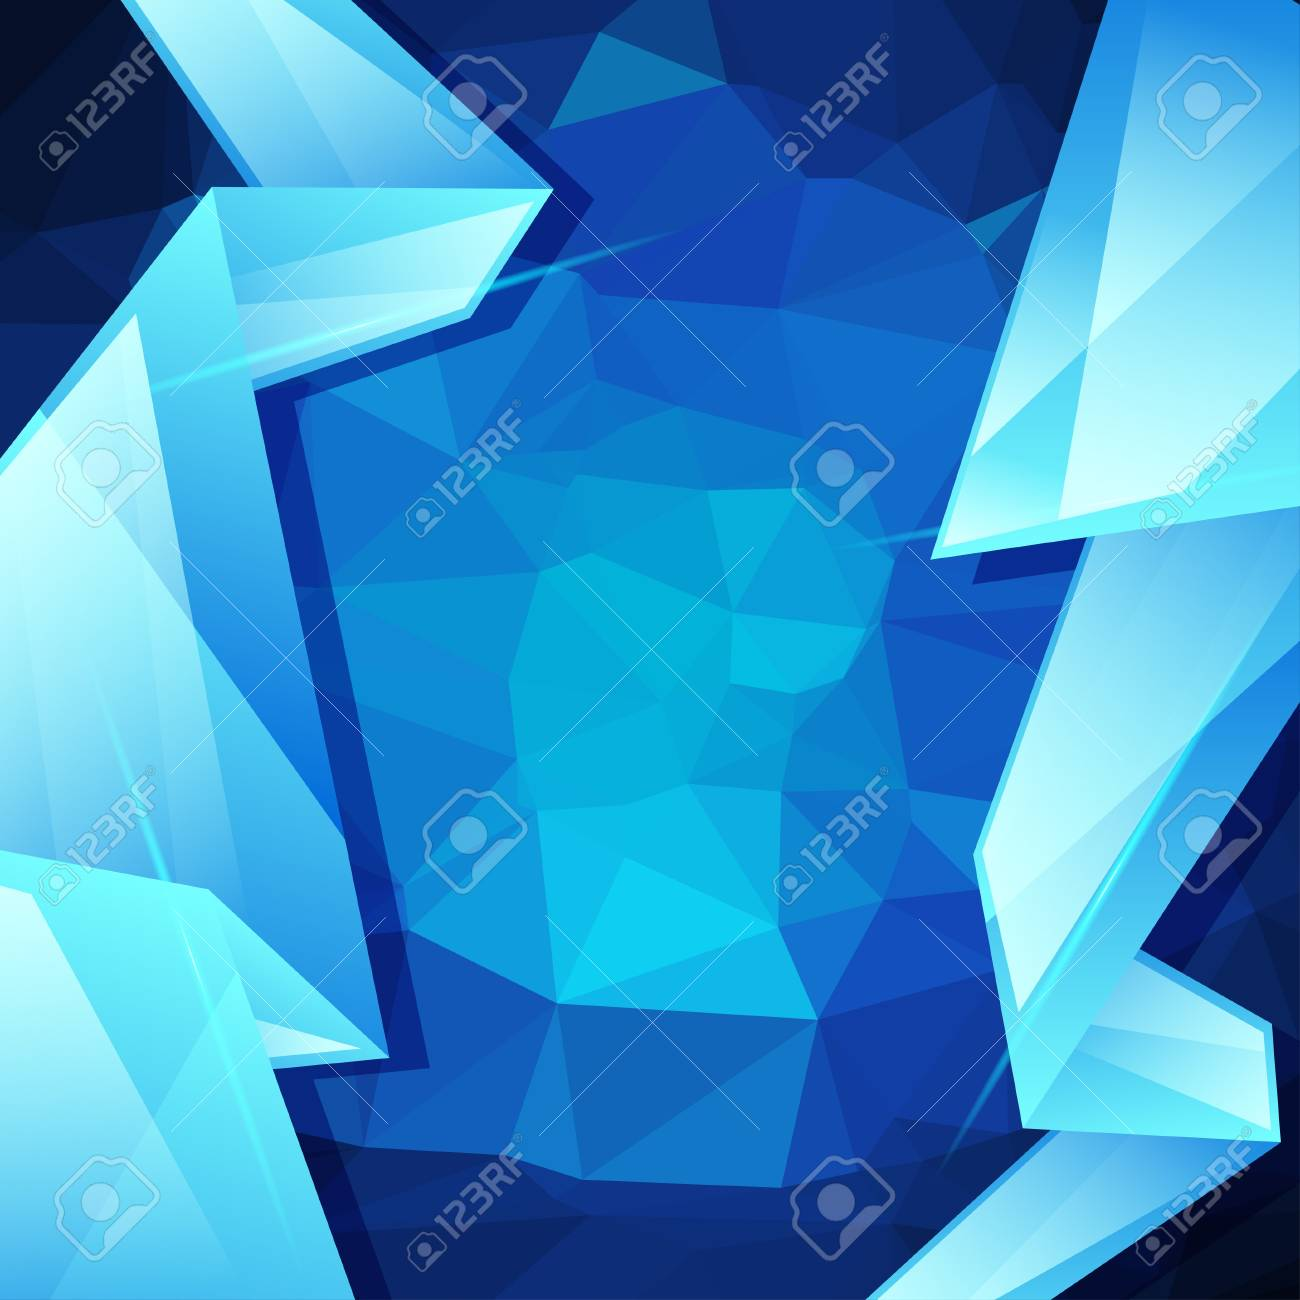 Abstract geometric background, design template Stock Vector - 19118011